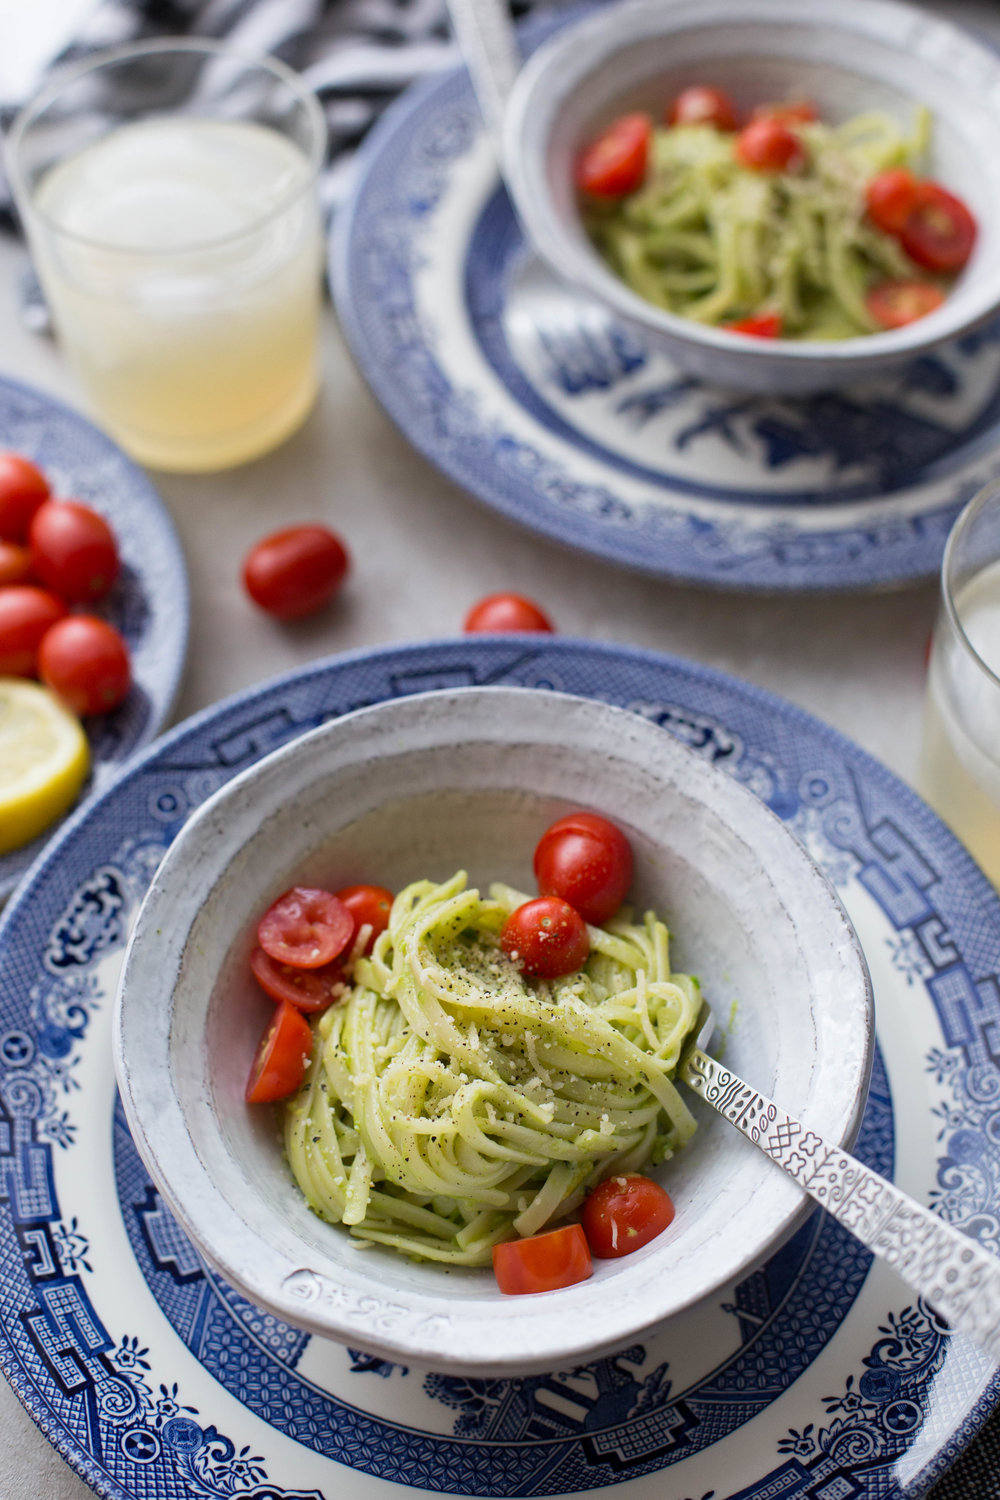 Creamy Avocado and Lemon Pasta